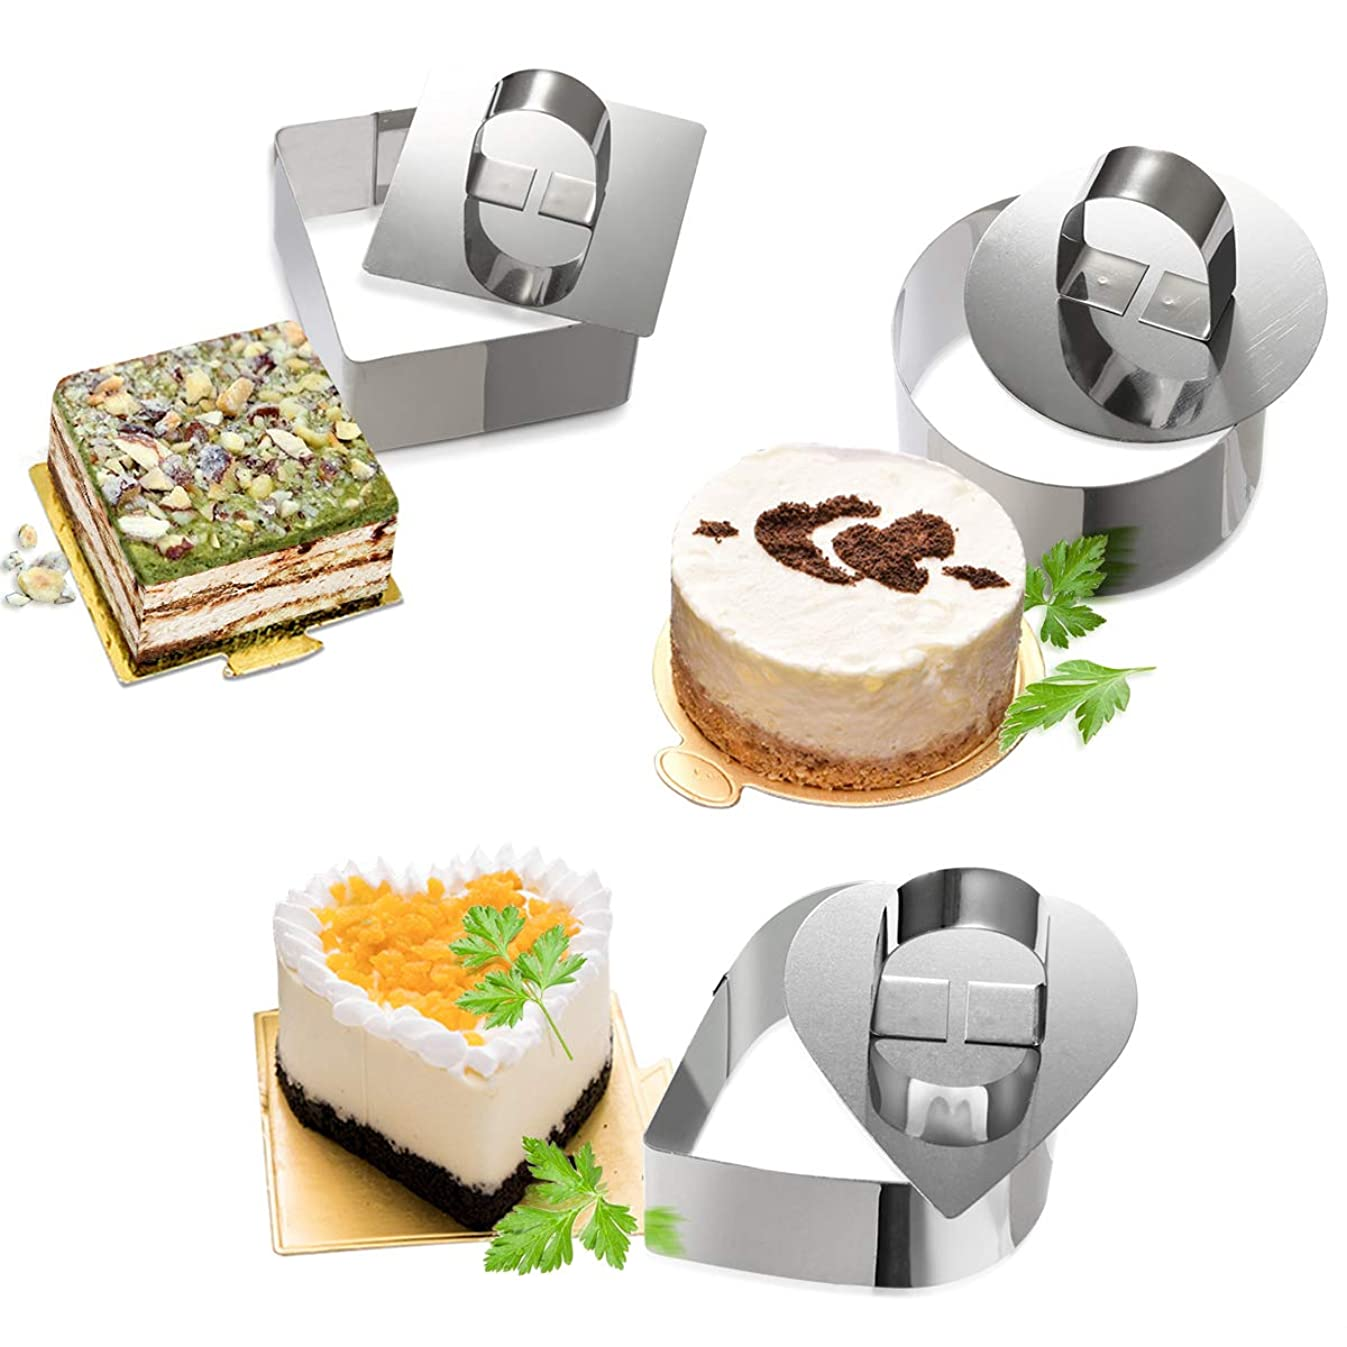 24 Pack Cake Molds Goowin Cake Rings Stainless Steel Food Pastry Dessert Ring with Pusher for Molding Layering Cake Cutting (12 Rings and 12 Ring Covers)